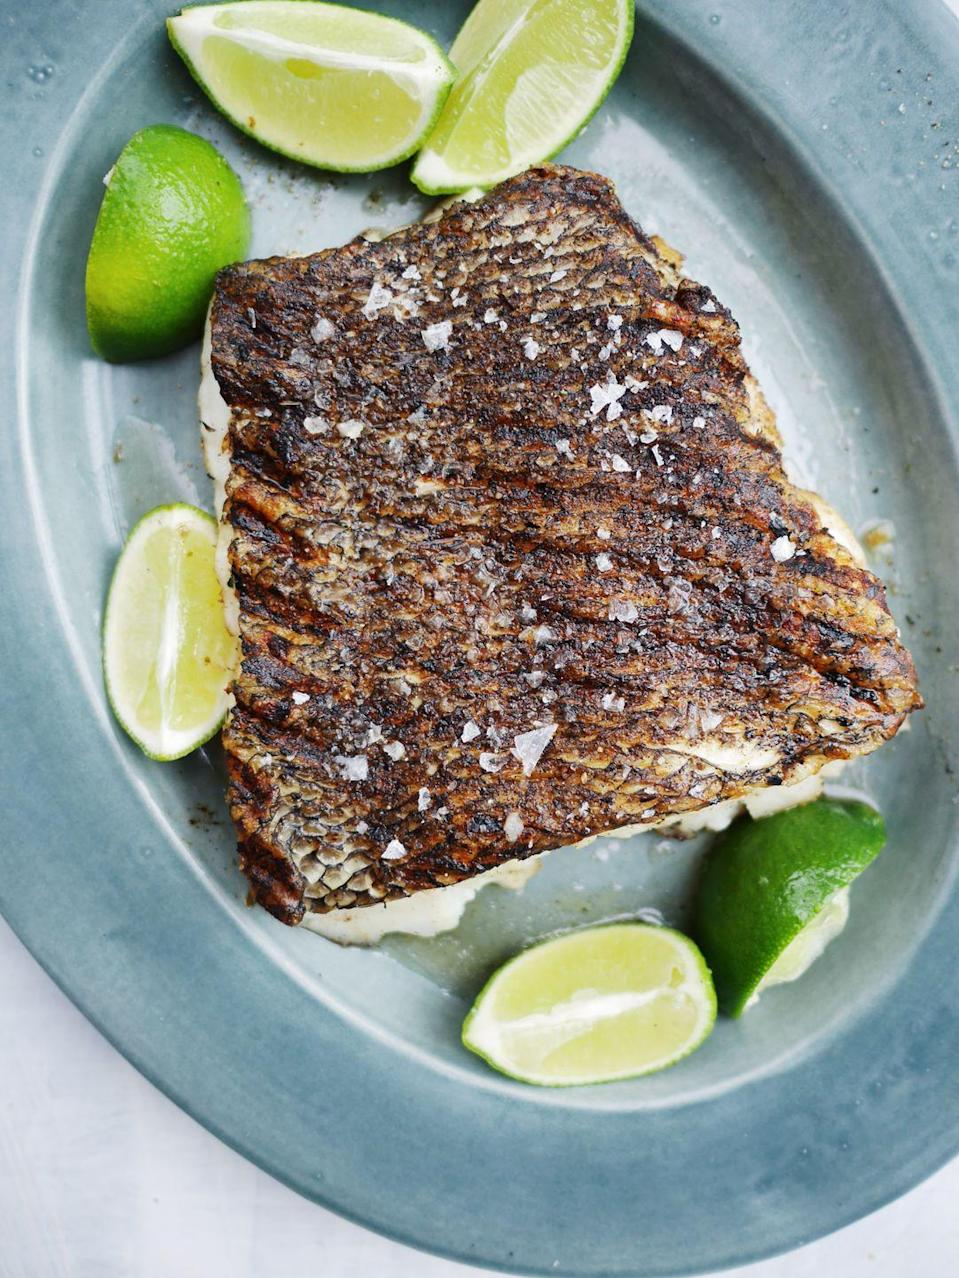 "<p>Don't be intimidated to grill fish!</p><p>Get the recipe from <a href=""https://www.delish.com/cooking/recipe-ideas/a21098903/best-grilled-fish-recipe/"" rel=""nofollow noopener"" target=""_blank"" data-ylk=""slk:Delish"" class=""link rapid-noclick-resp"">Delish</a>.</p>"